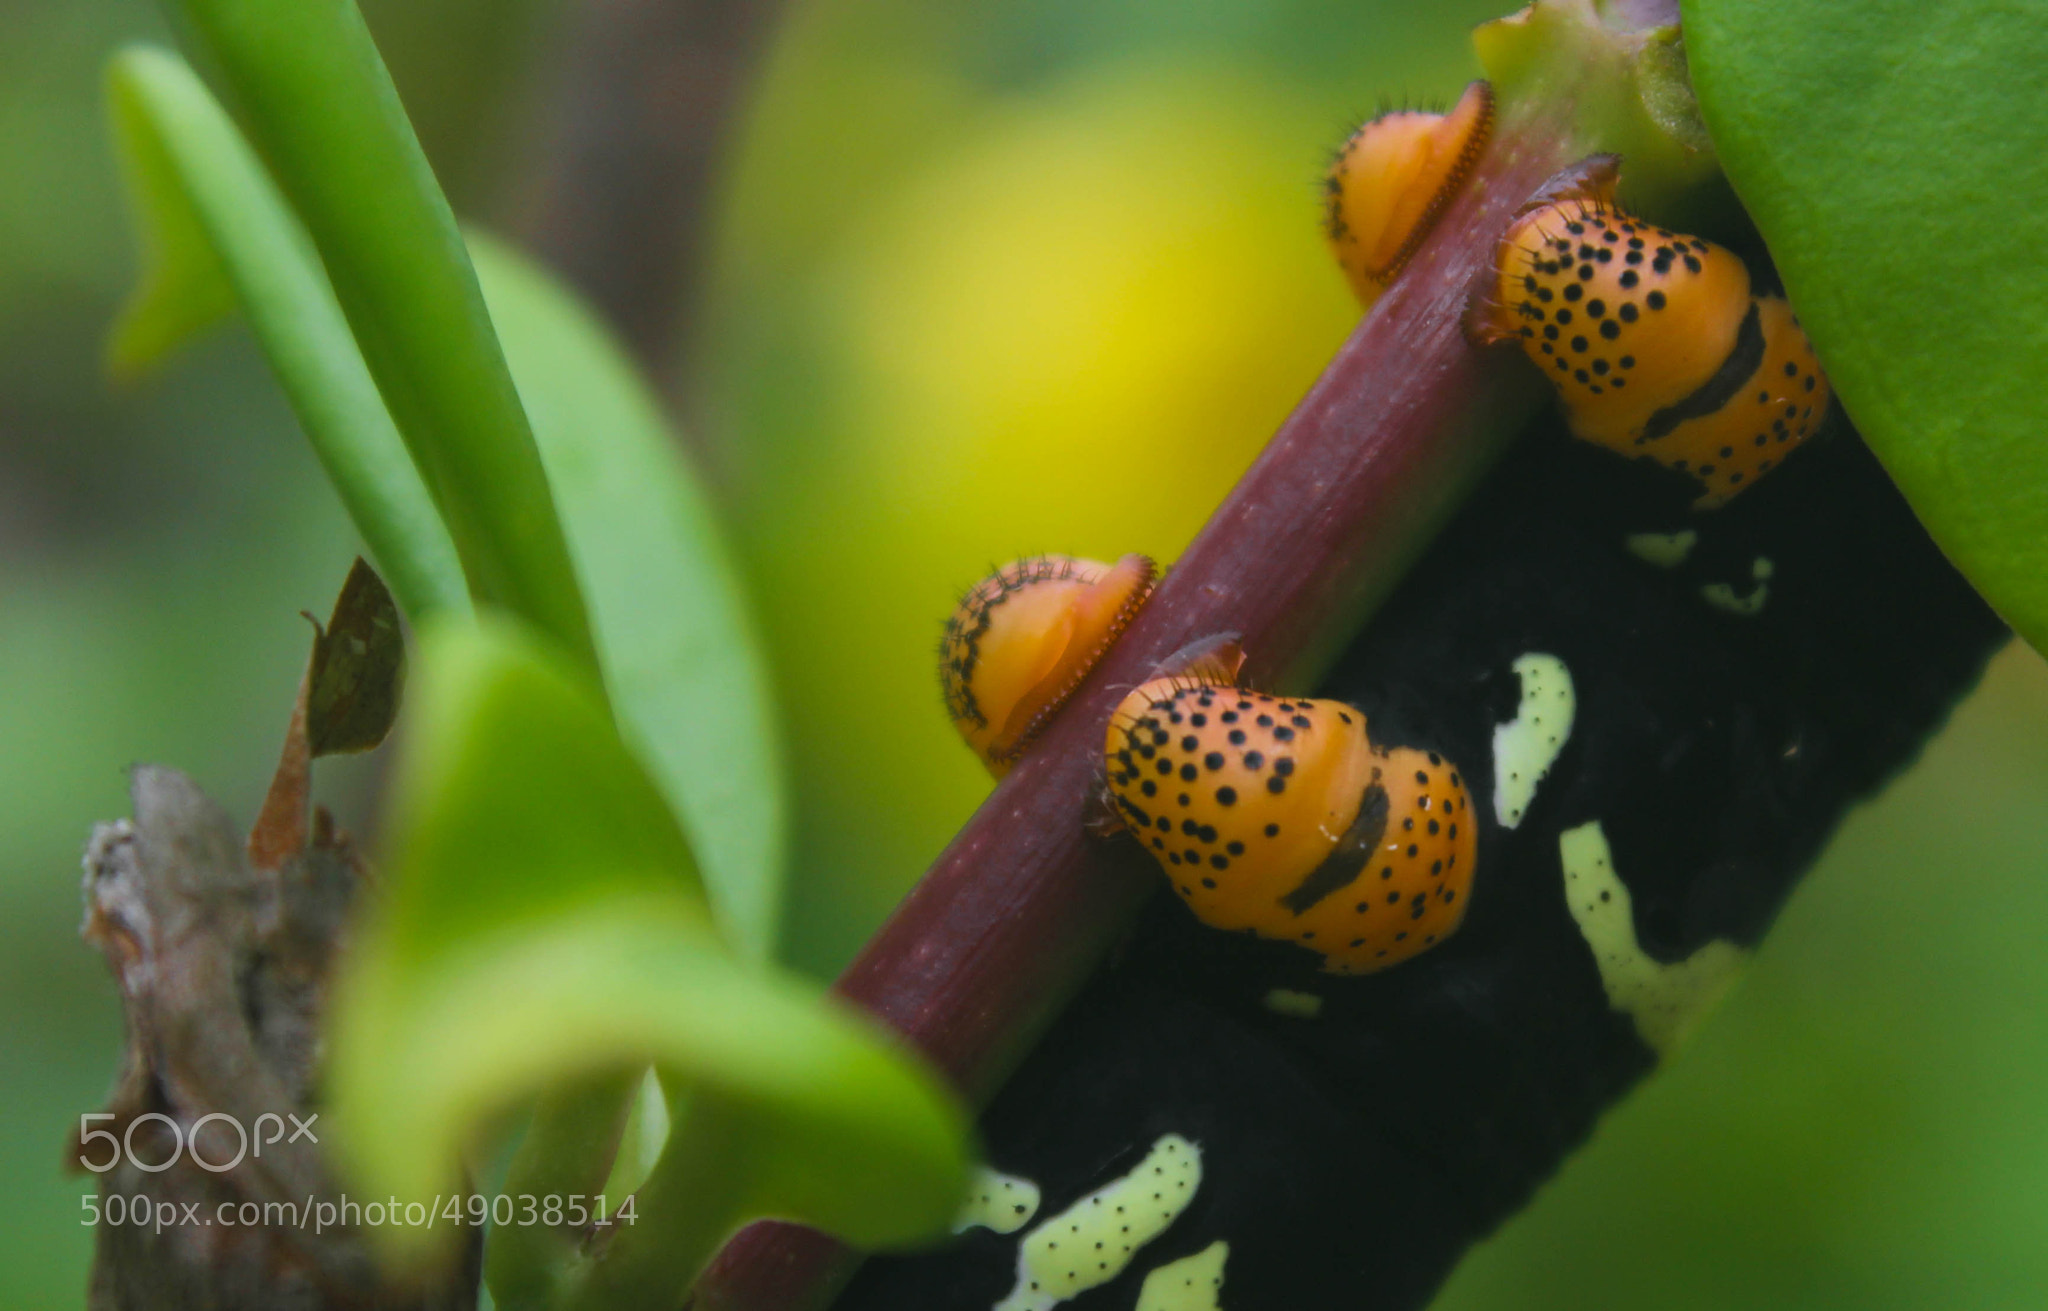 Photograph caterpillar grip. by Adriana Vazquez on 500px